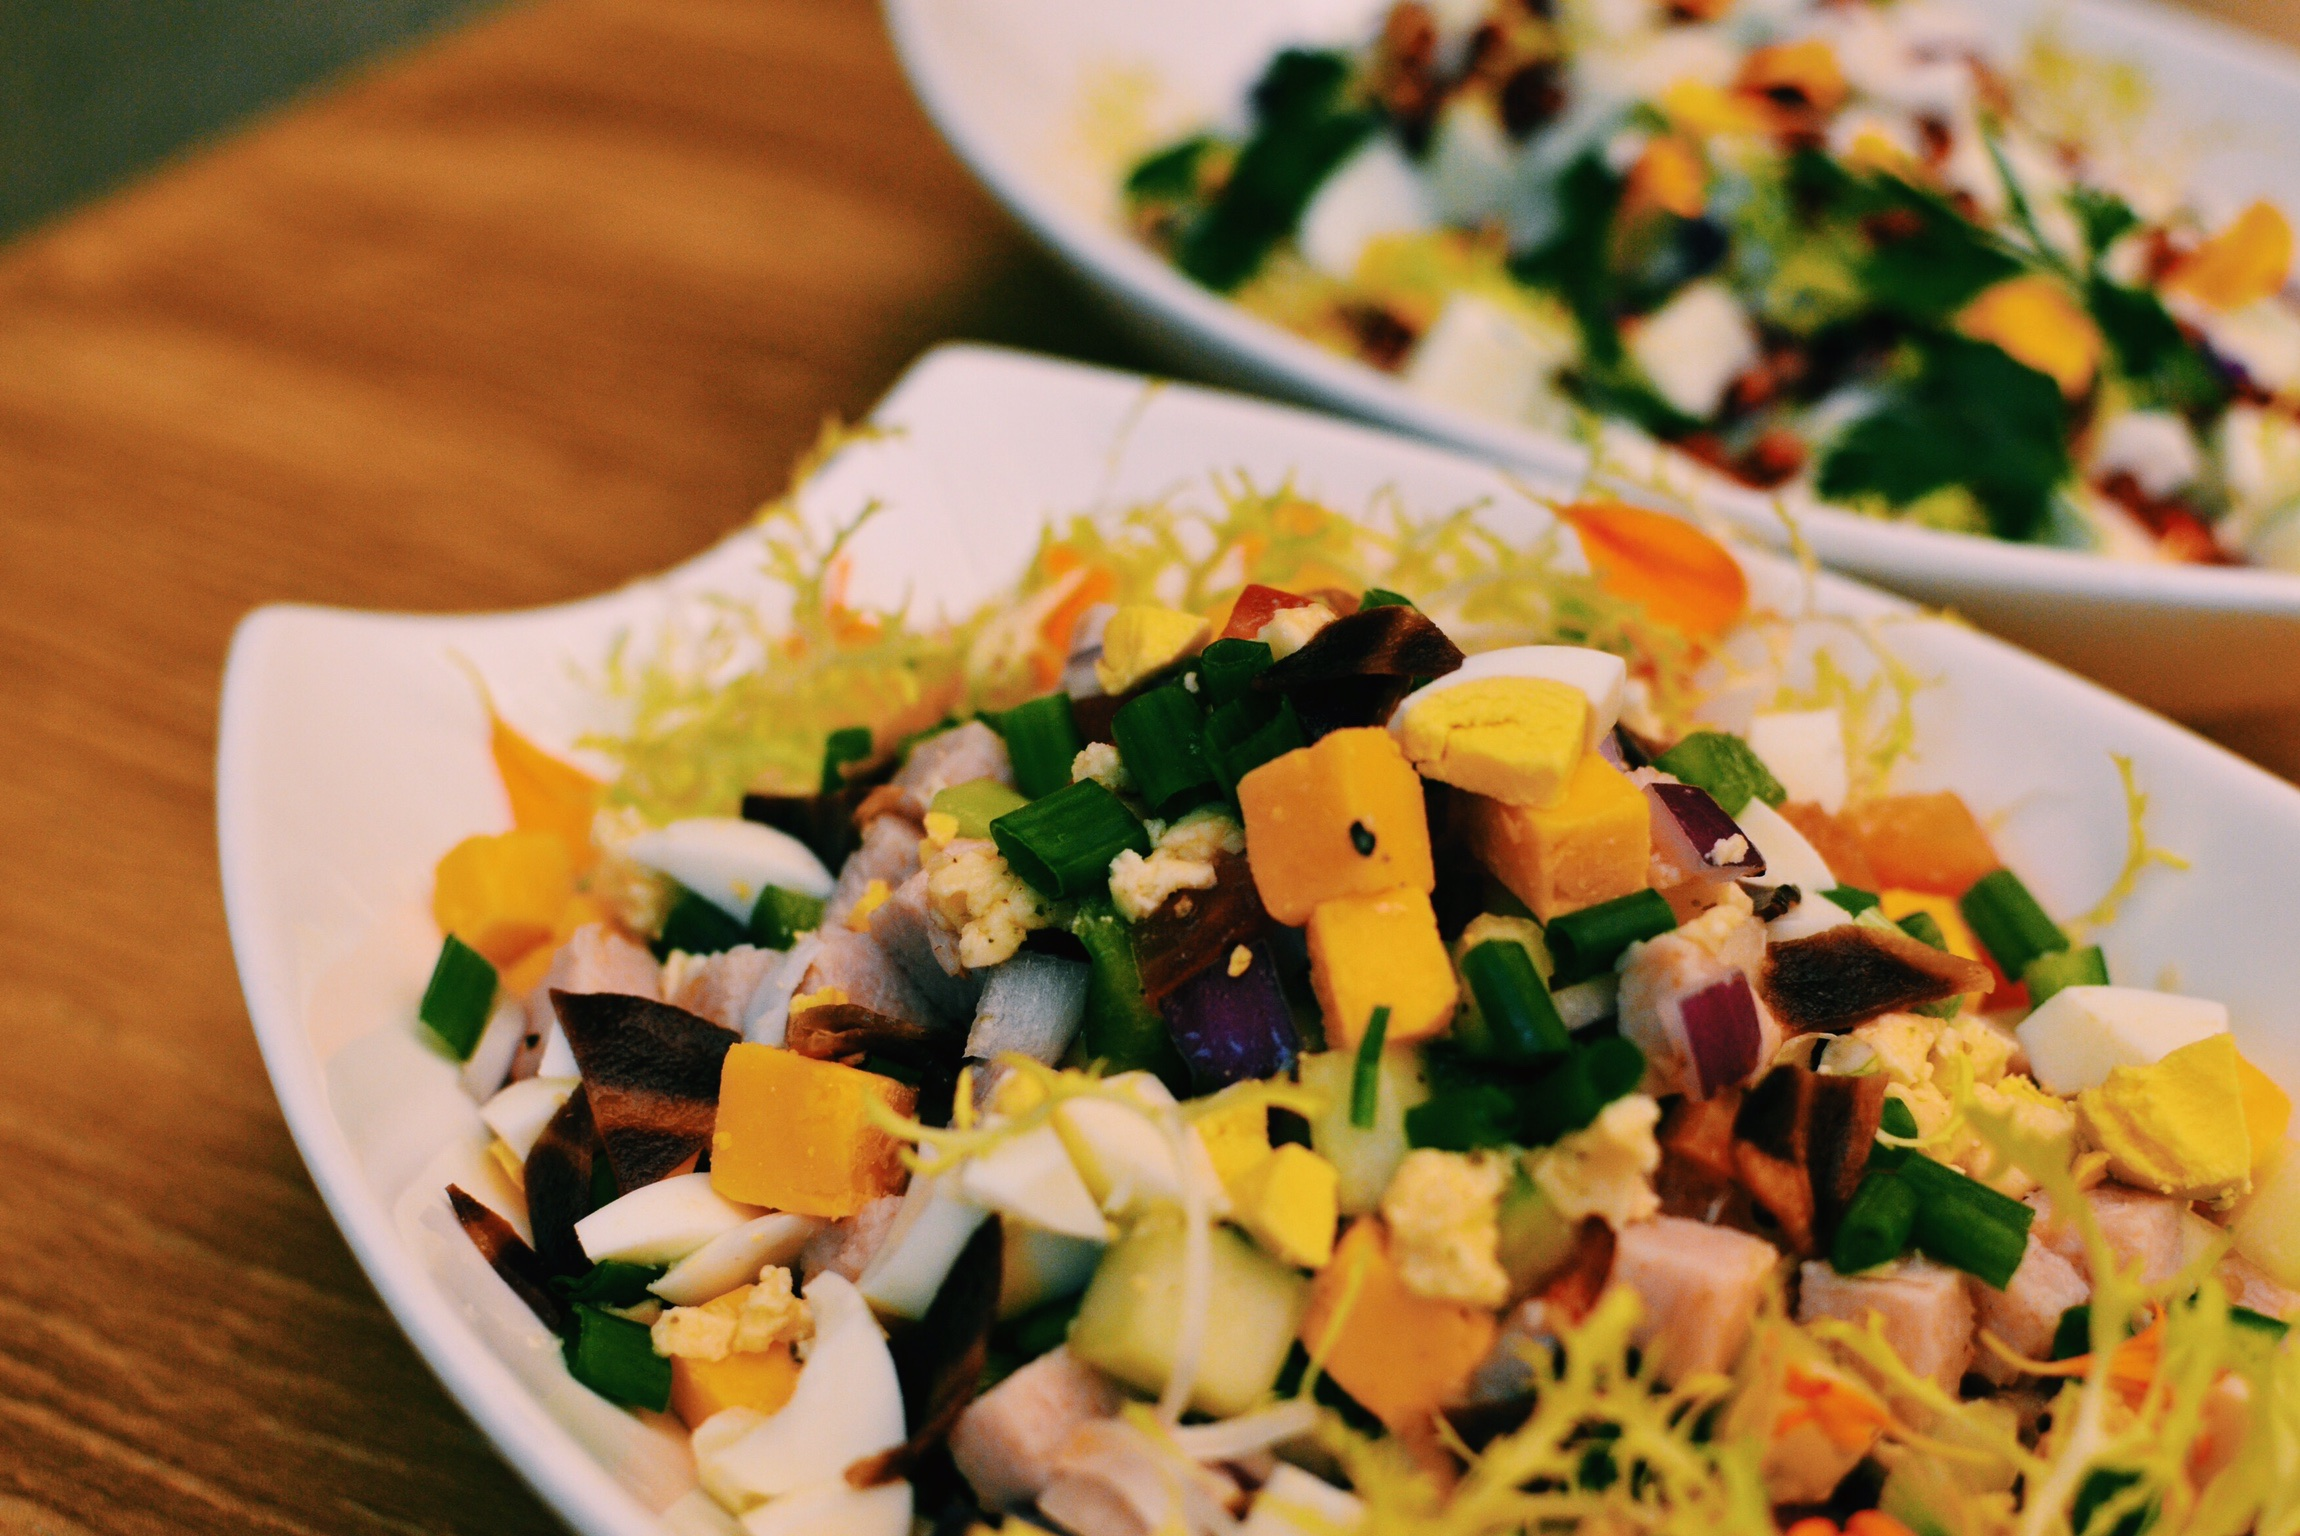 Crowne Plaza Changi Airport Chopped Salad with Smoked Turkey Ham and Cheddar Cheese